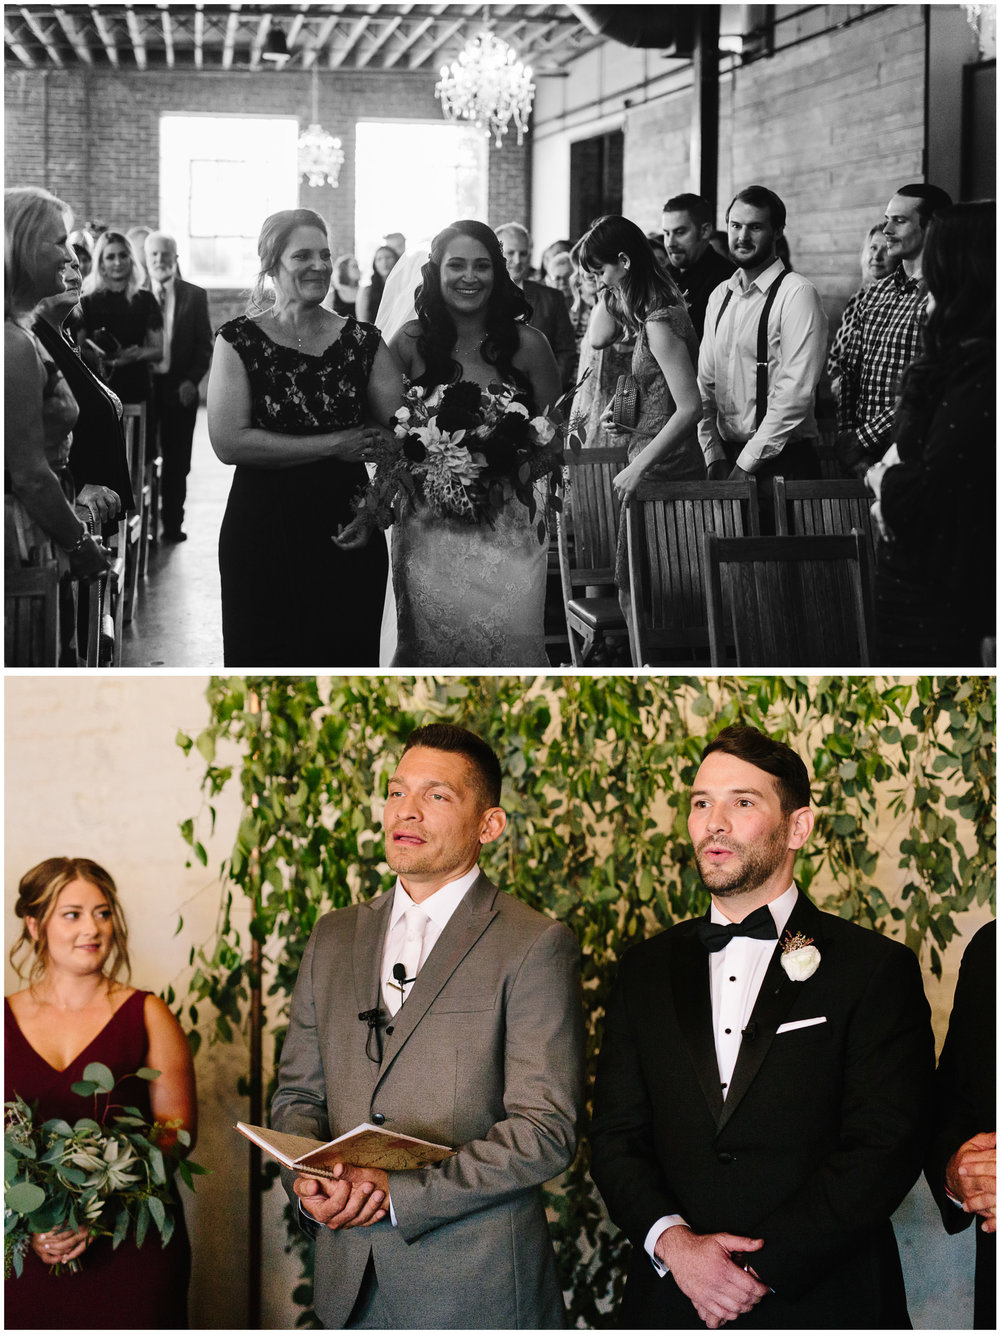 moss_denver_wedding_48.jpg